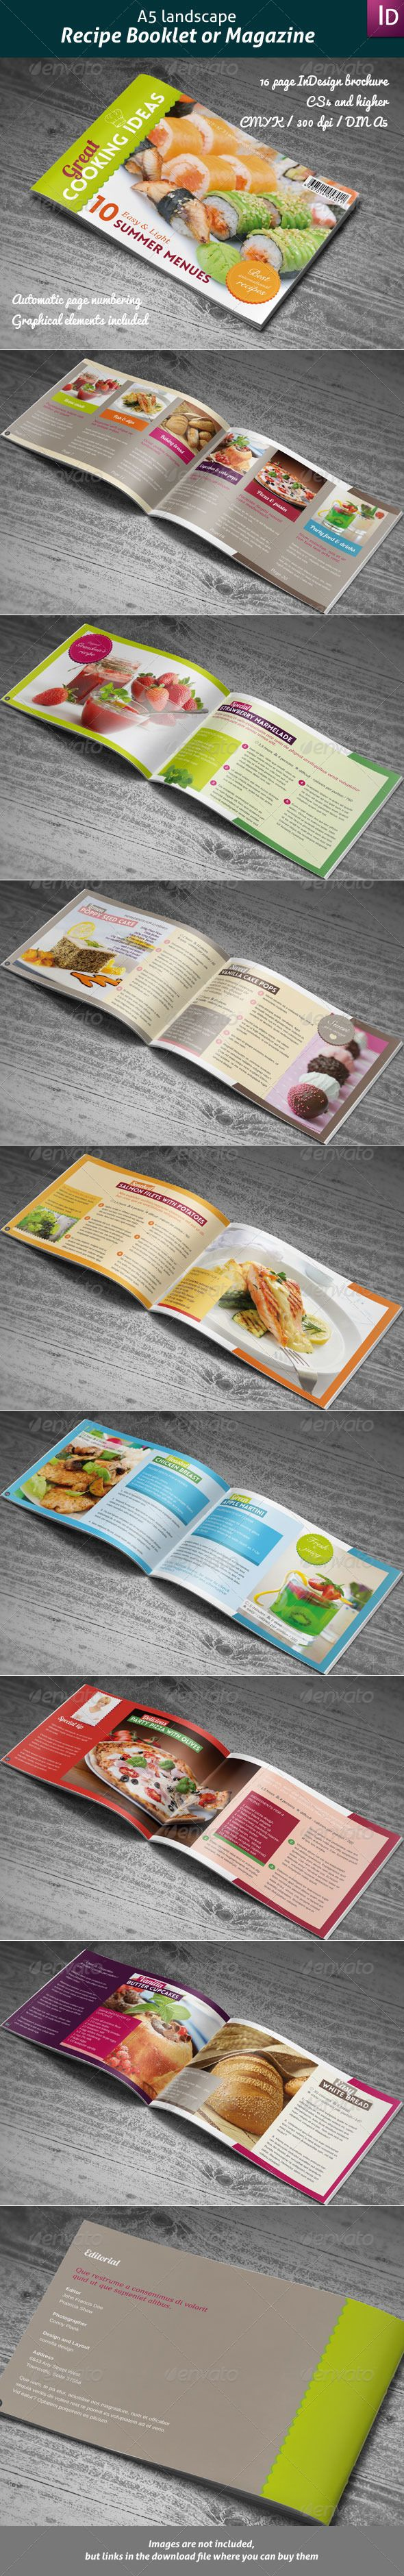 Recipes Booklet or Magazine  #food #indesign #kitchen • Available here → http://graphicriver.net/item/recipes-booklet-or-magazine/4191377?s_rank=234&ref=pxcr